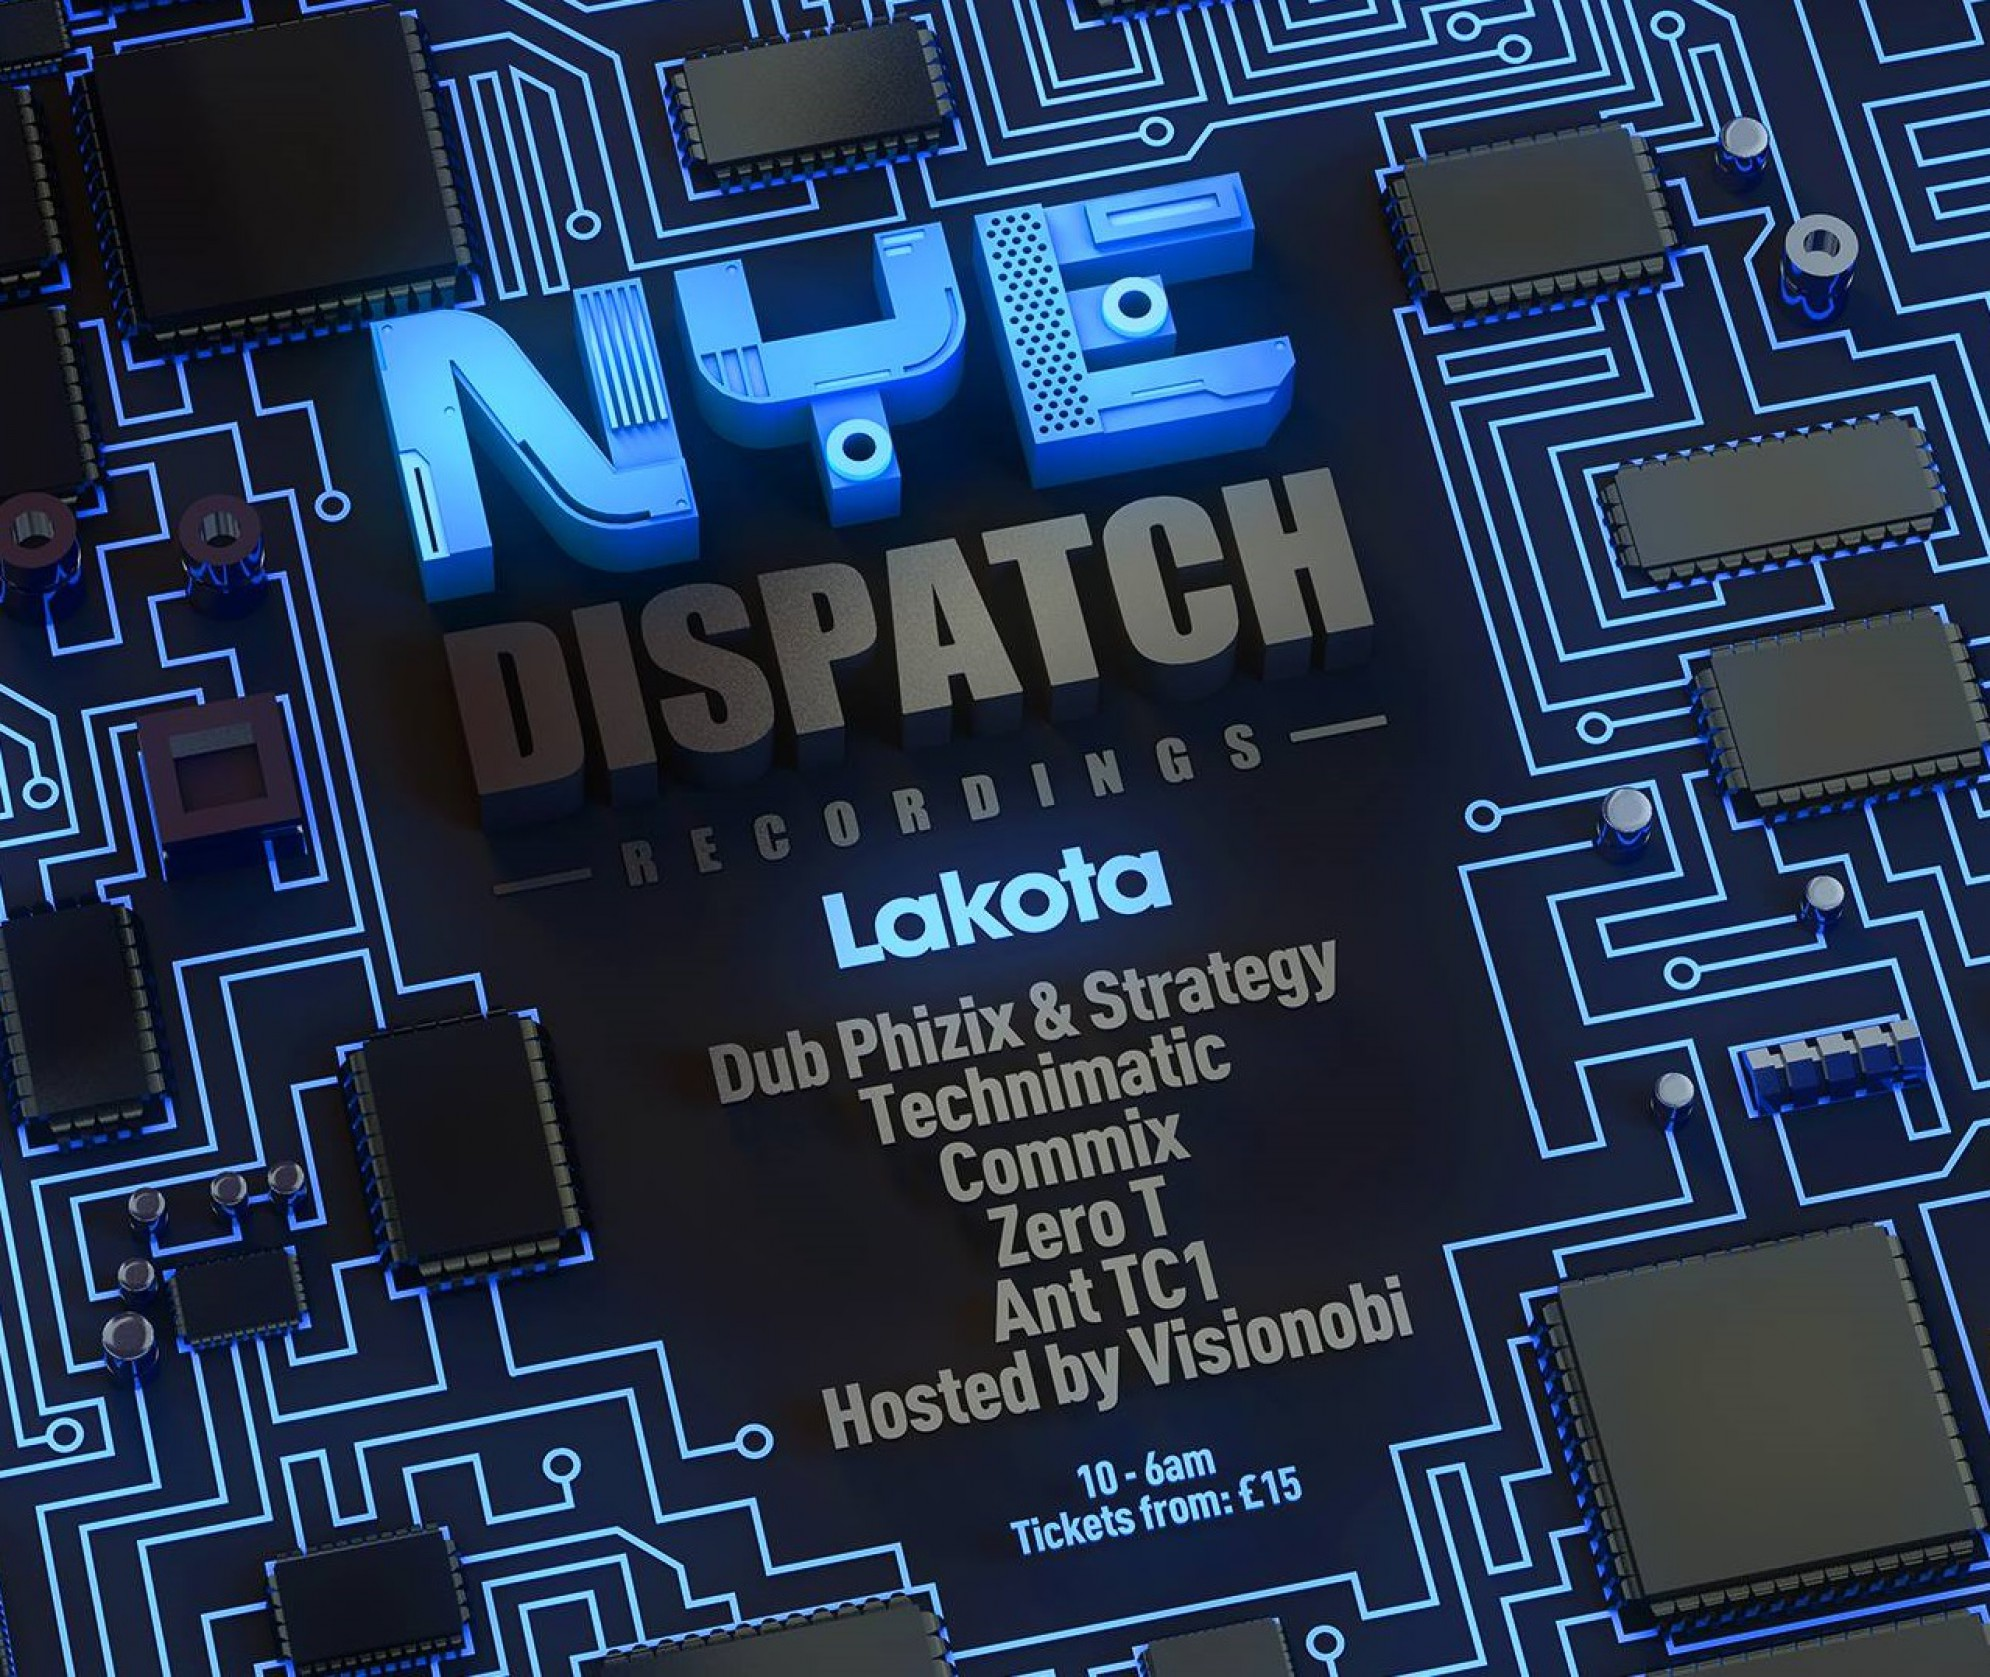 Lakota's NYE: Dispatch Recordings Takeover